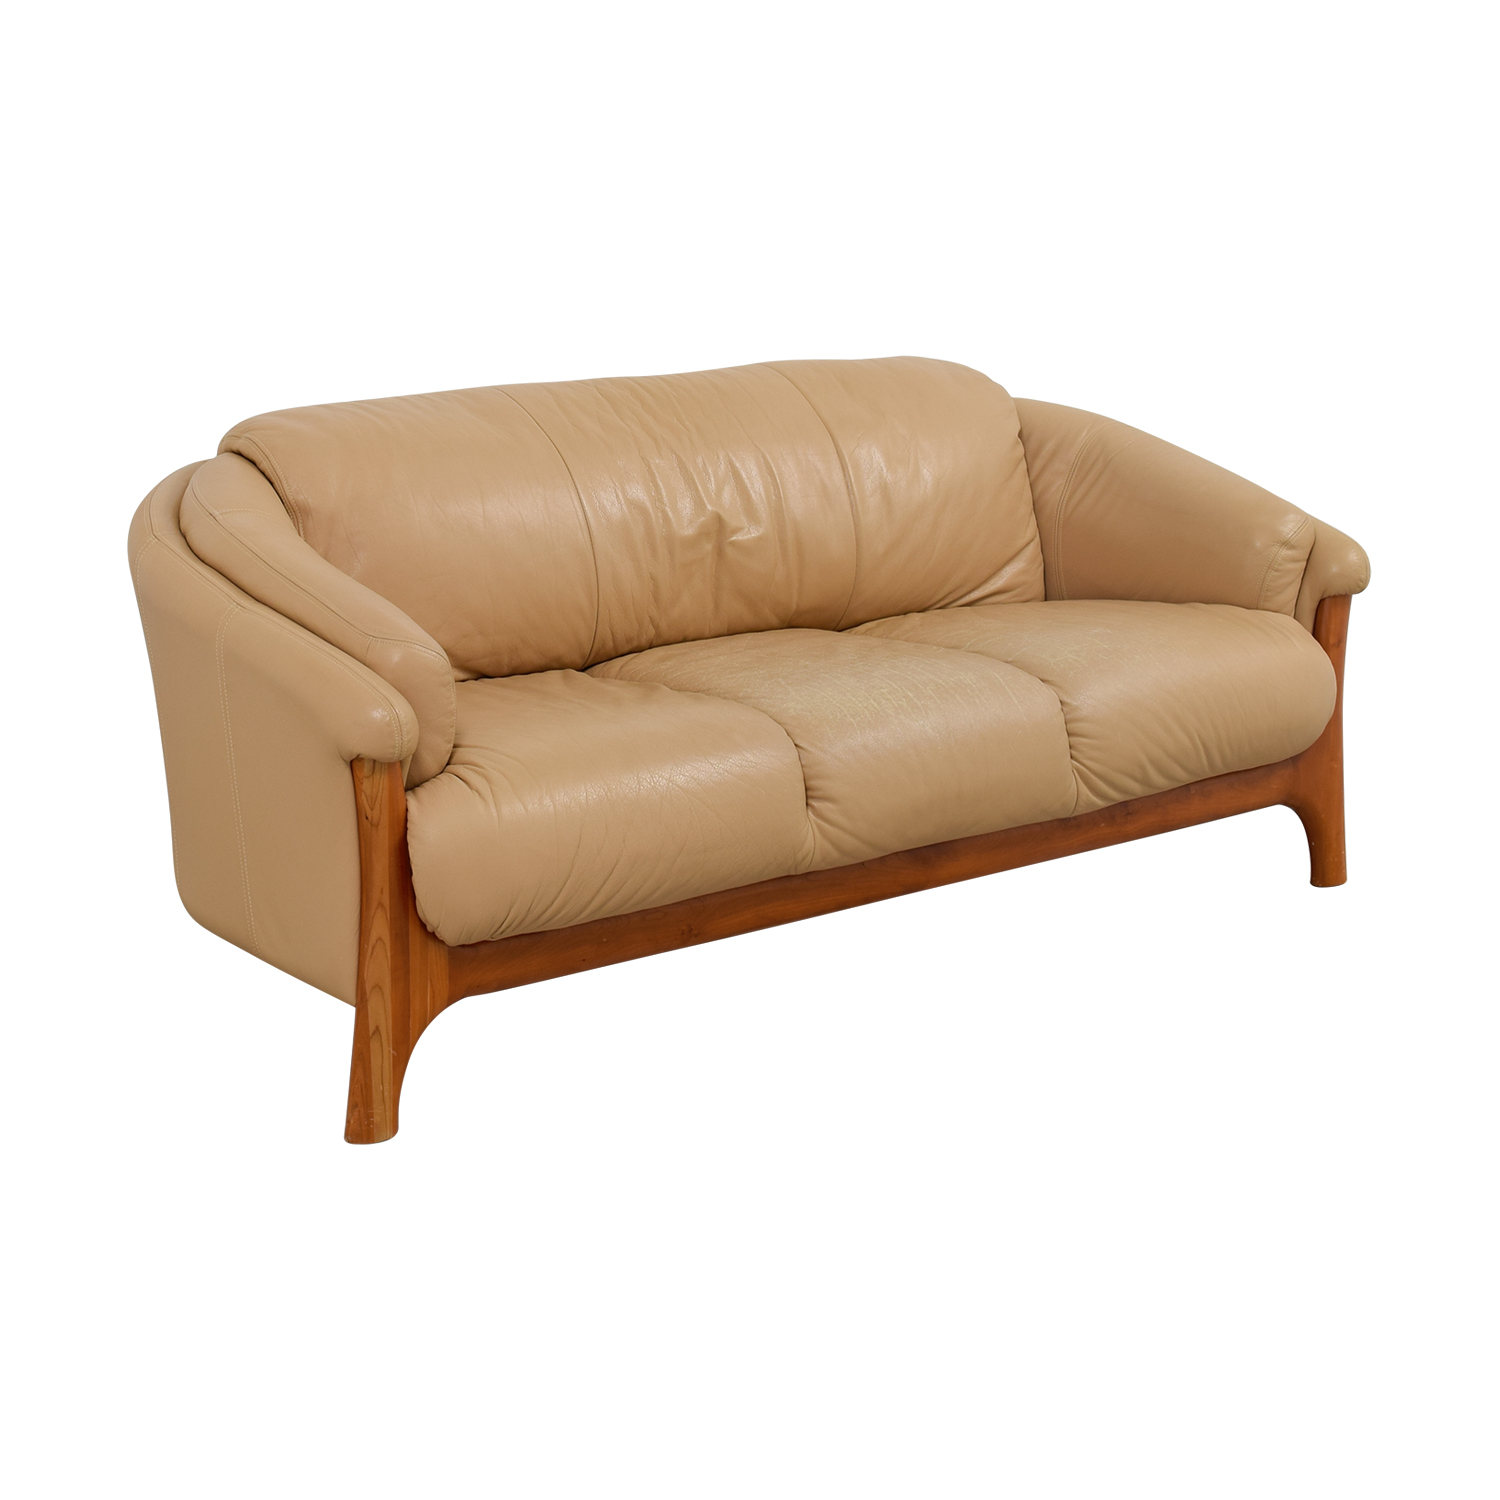 Exceptional ... House Of Norway Skandinavian Furniture House Of Norway Brown Leather  Sofa Discount ...